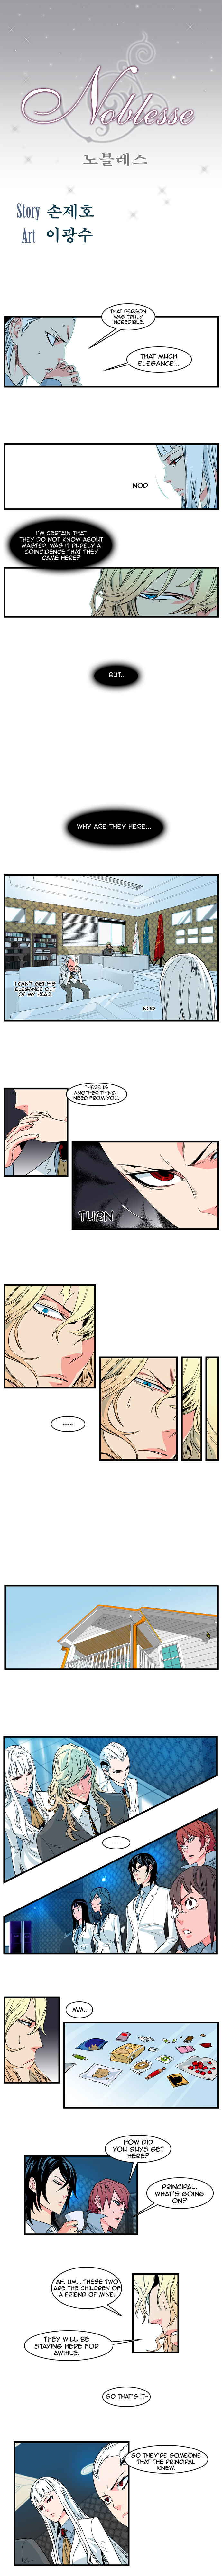 Noblesse 100 Page 1